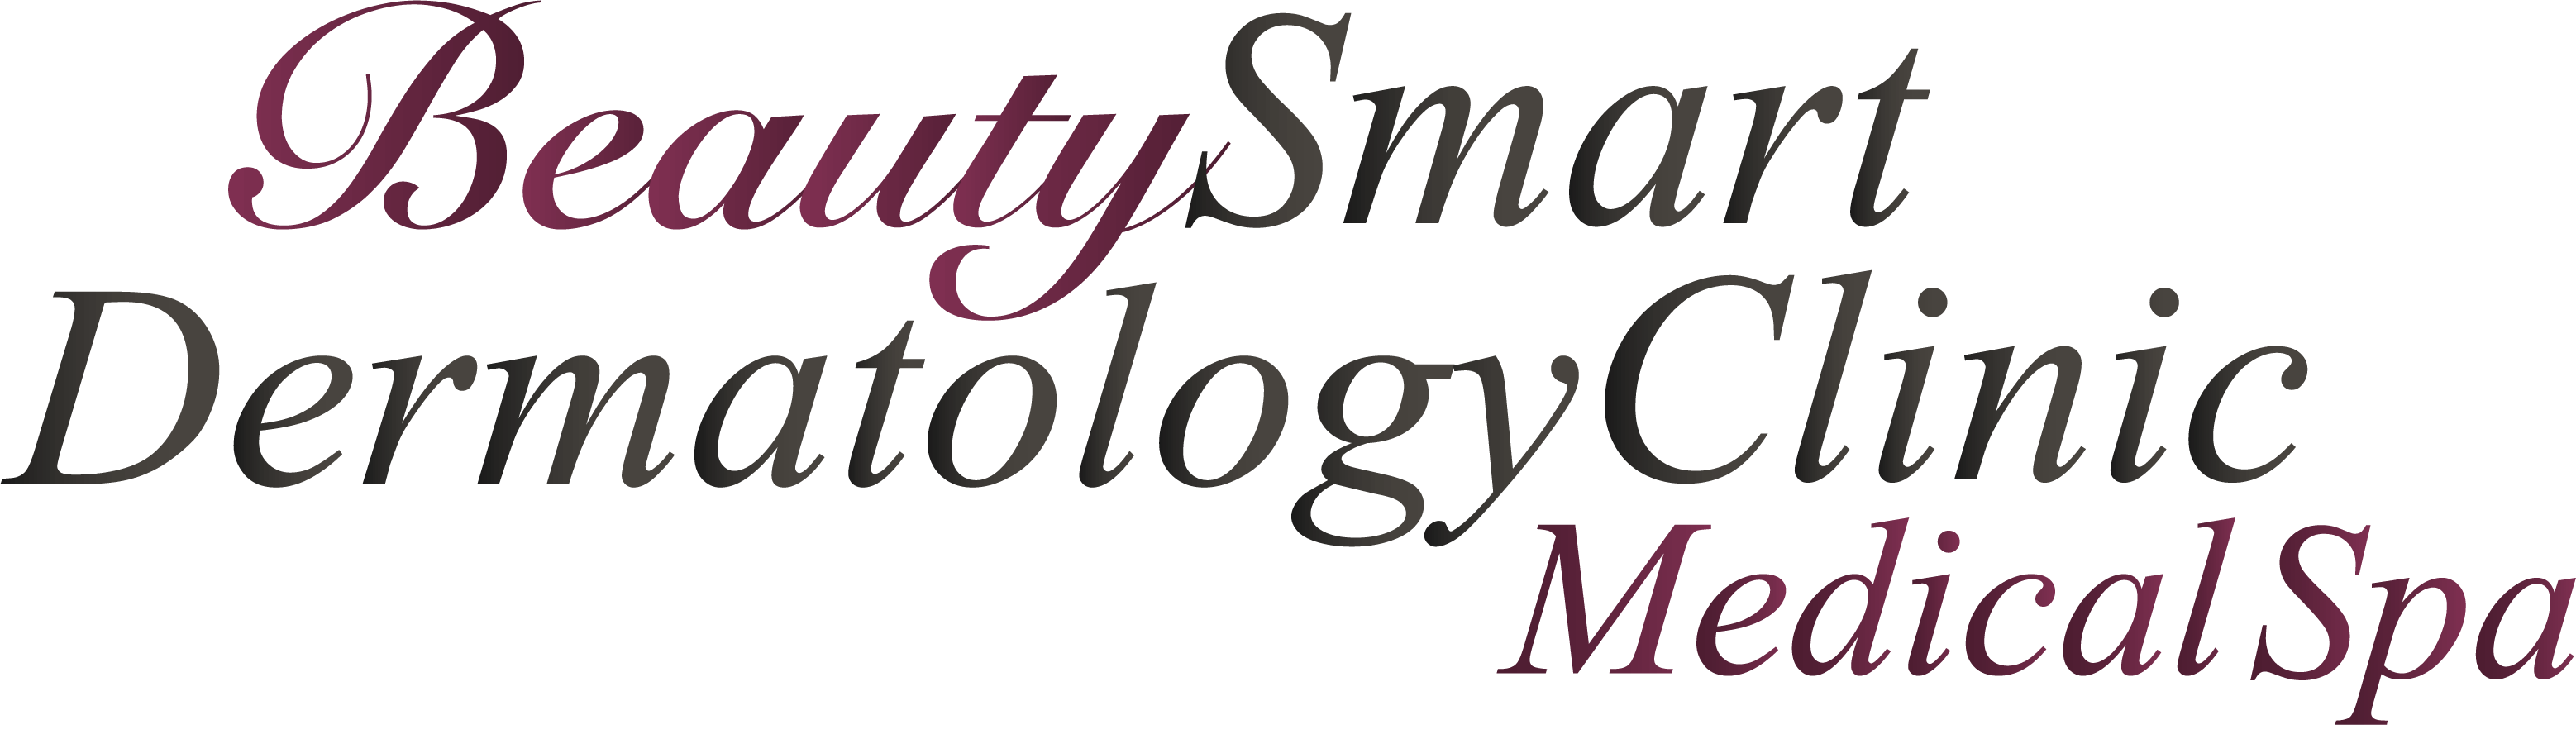 Dermatology Cosmetic Laser Center Medical Spa Boca Raton Body Skin Care Hair Removal BeautySmart MD